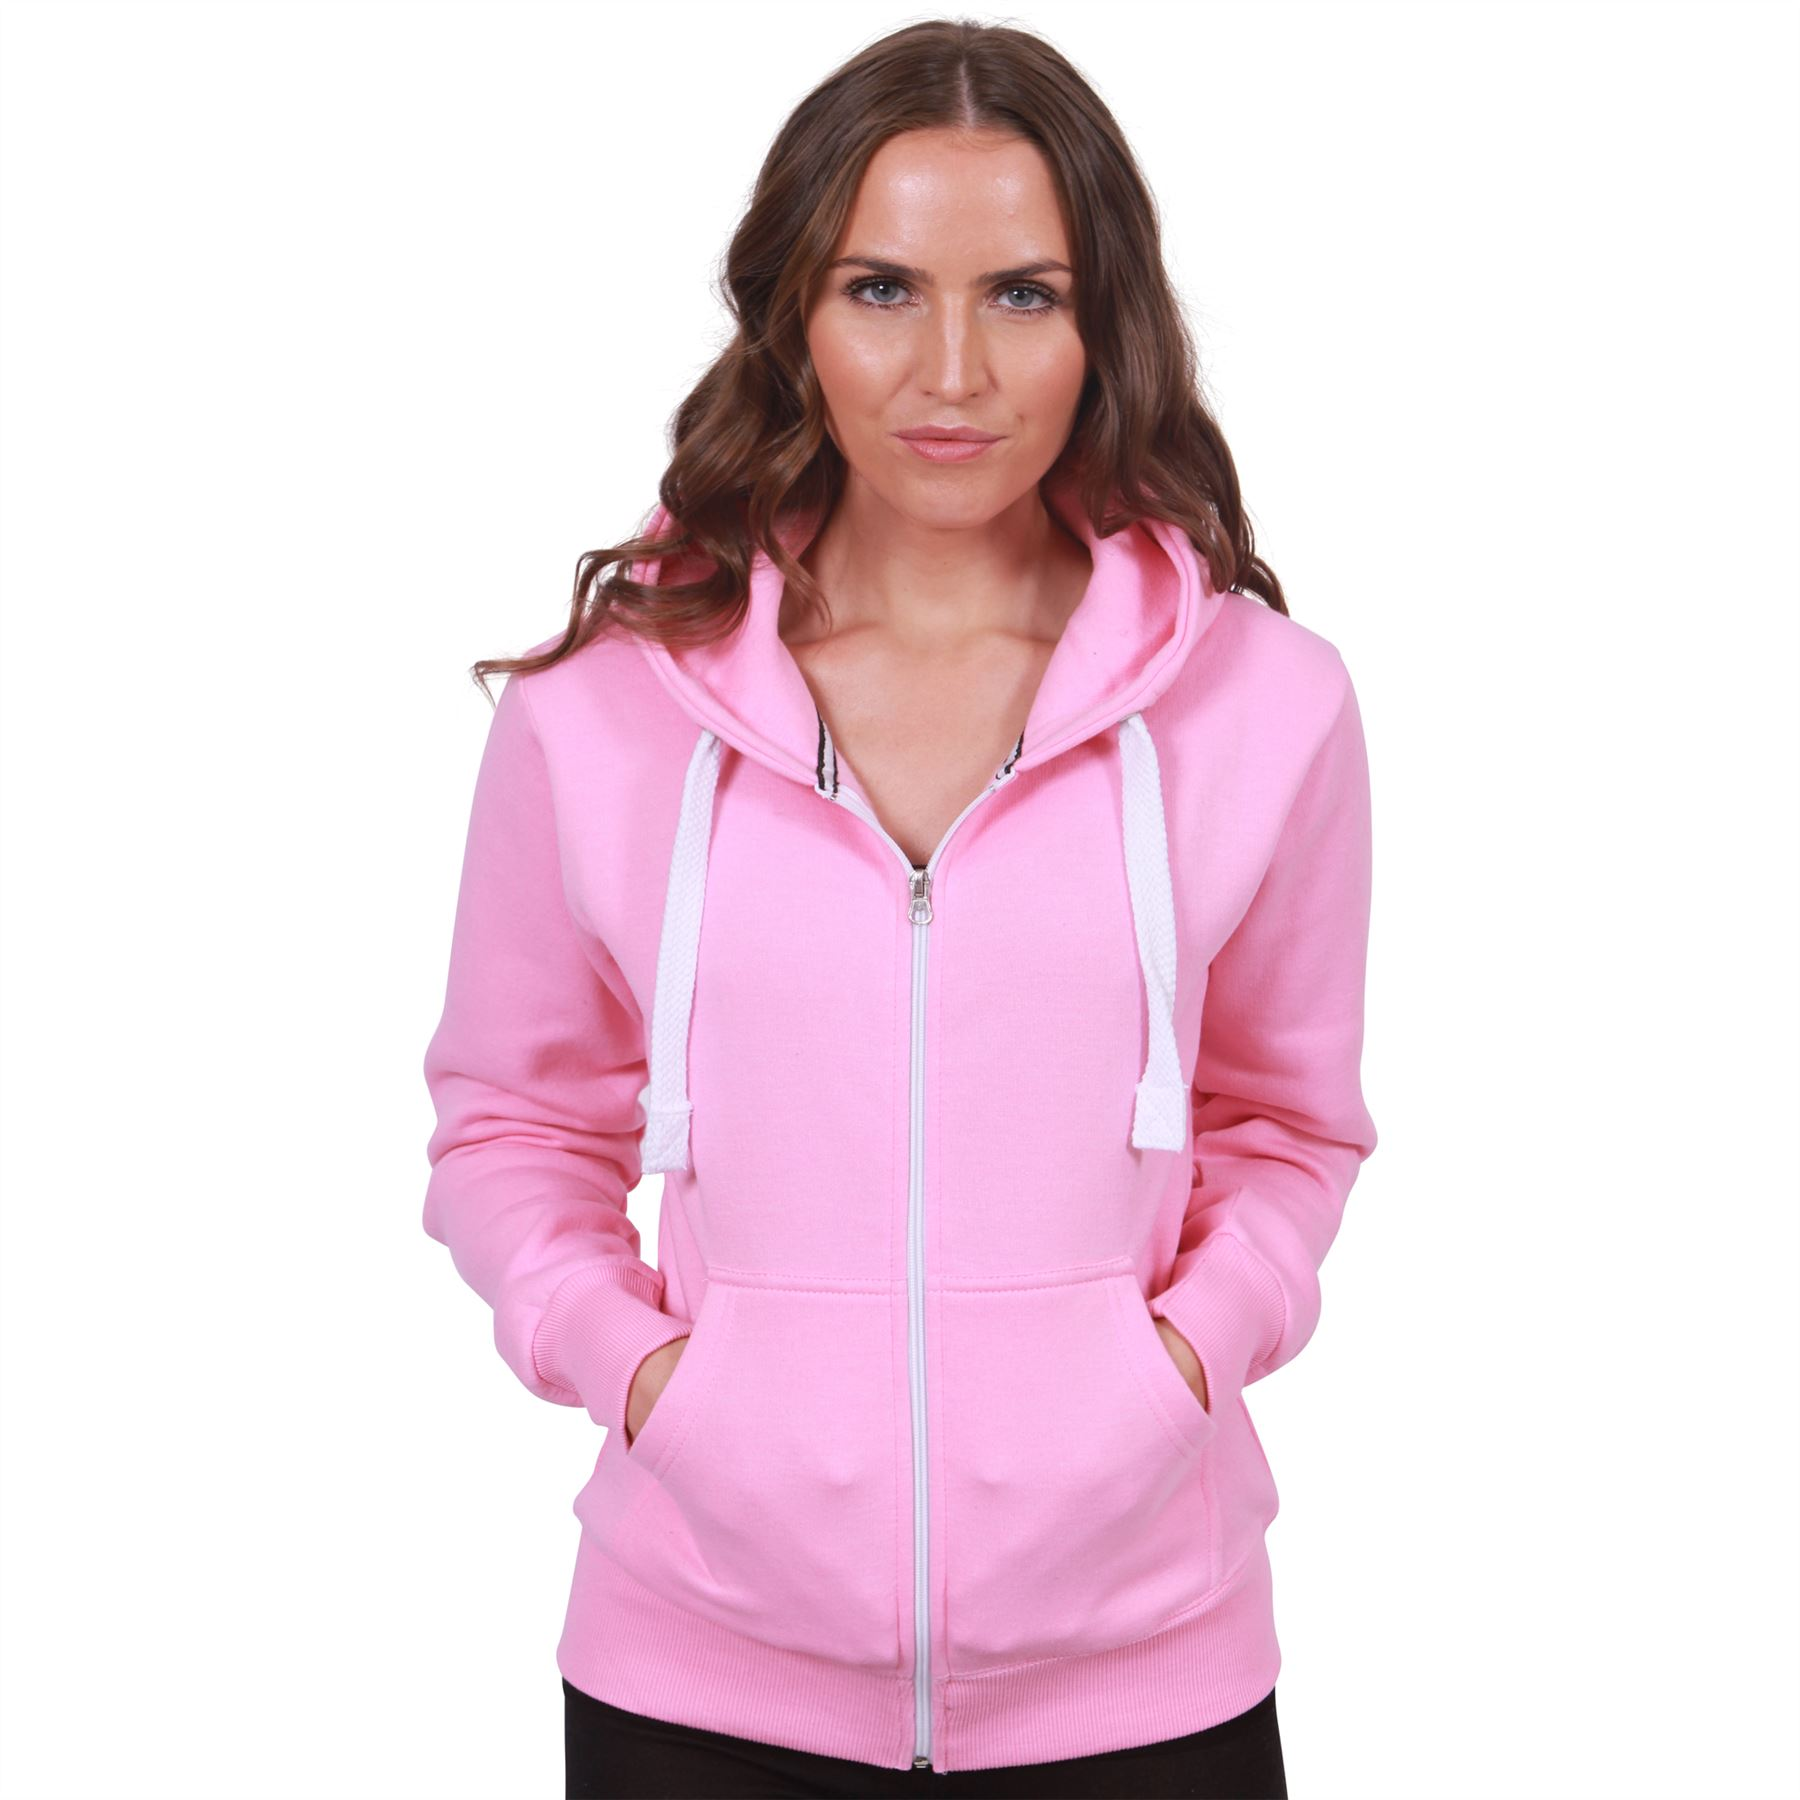 Hoodies for women plus size